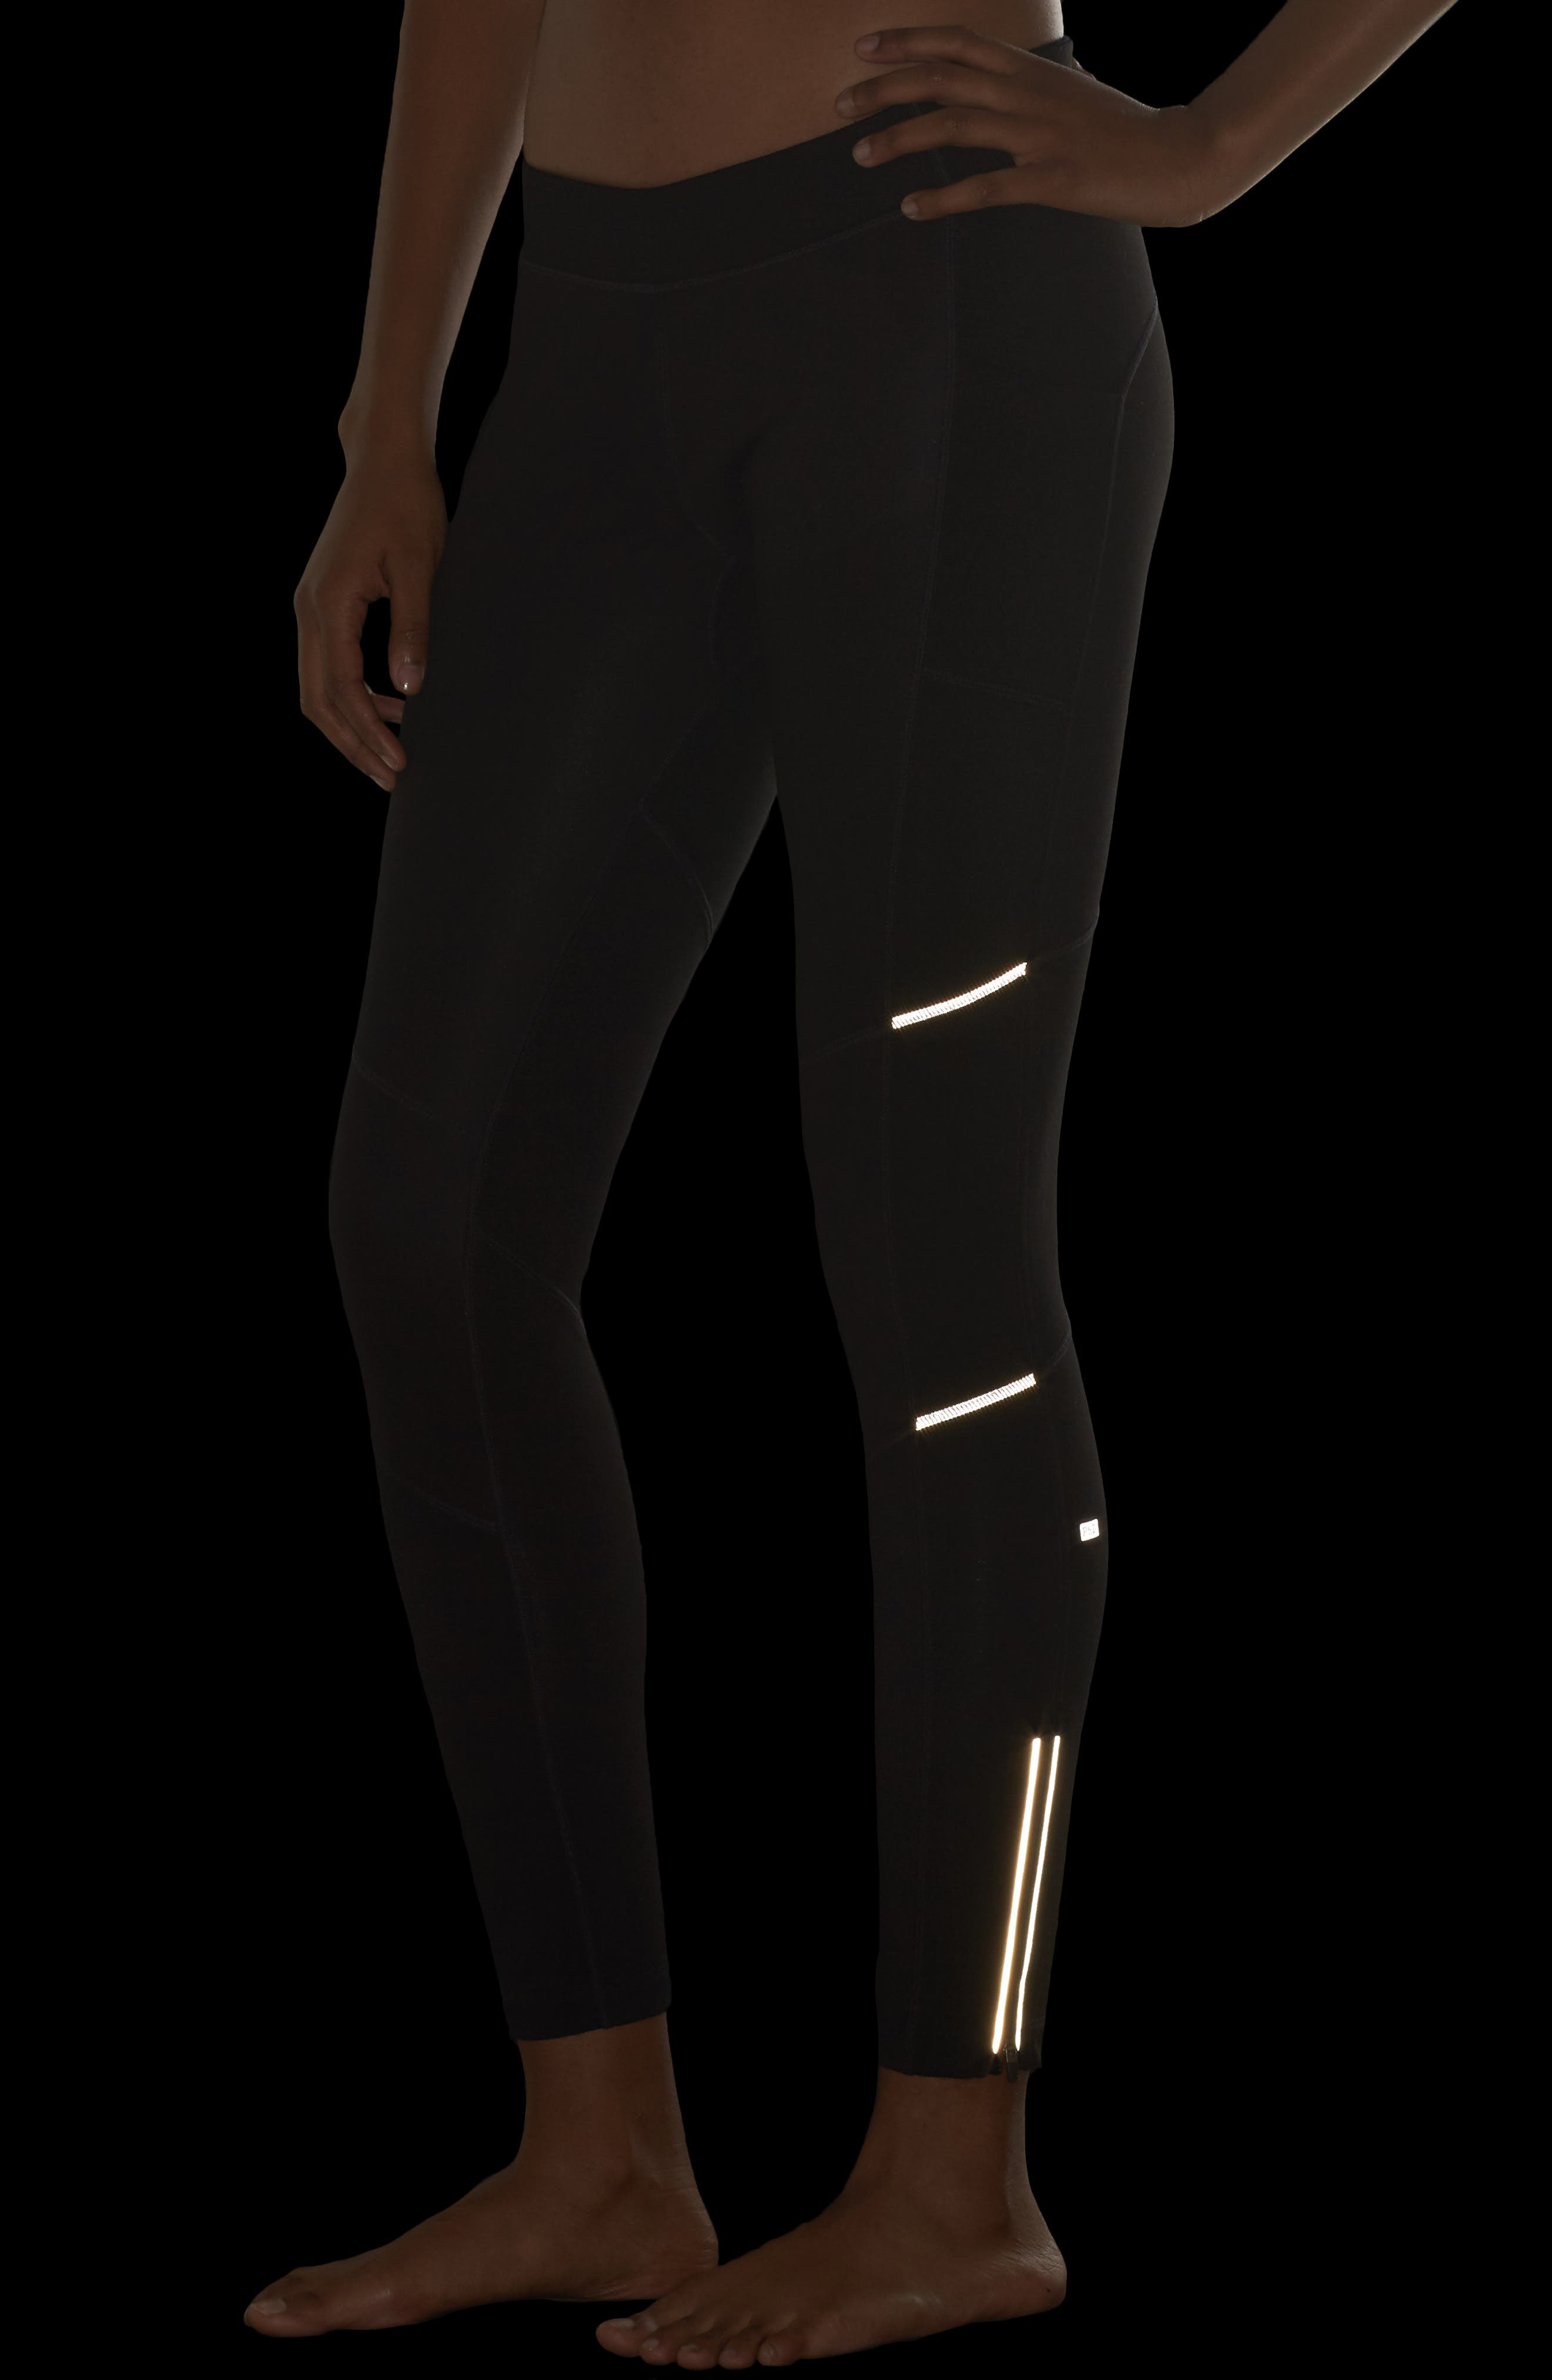 PhD Wind Tights,                             Alternate thumbnail 4, color,                             001